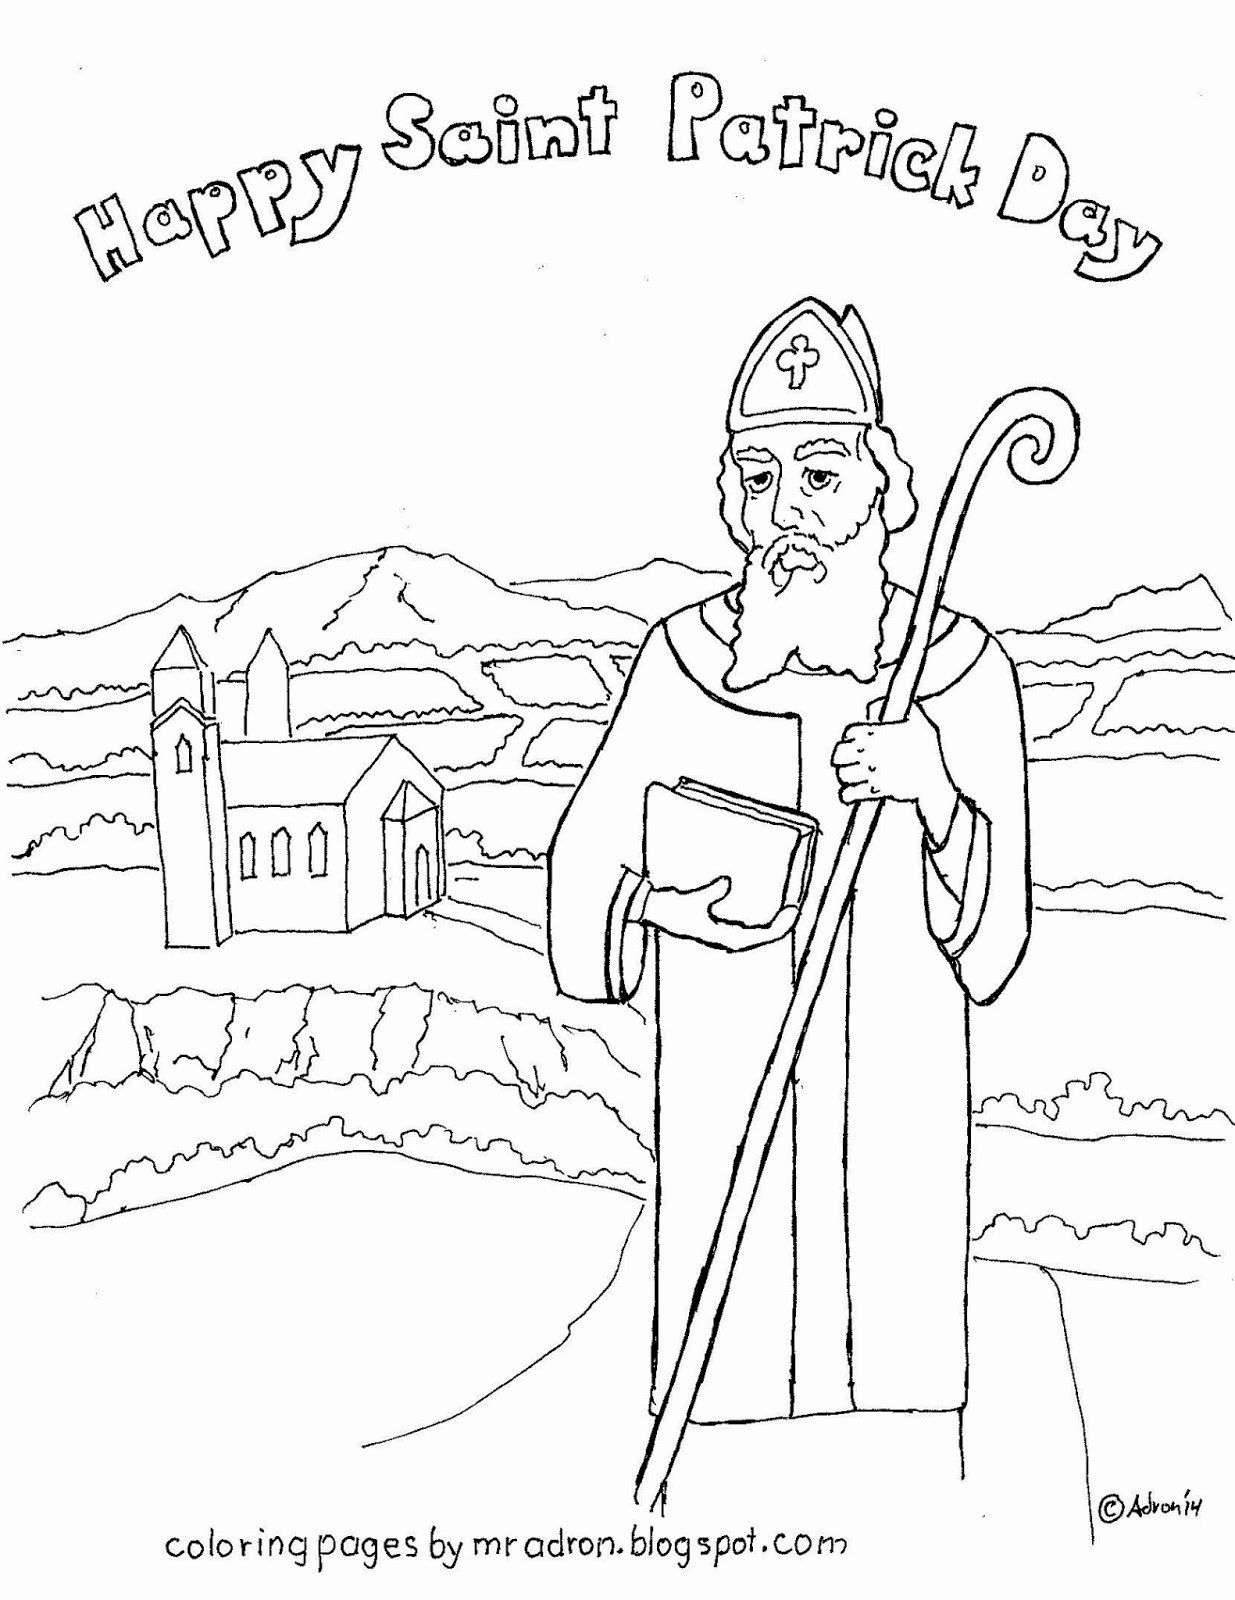 St Patrick's Day Coloring Page Luxury Coloring Pages for